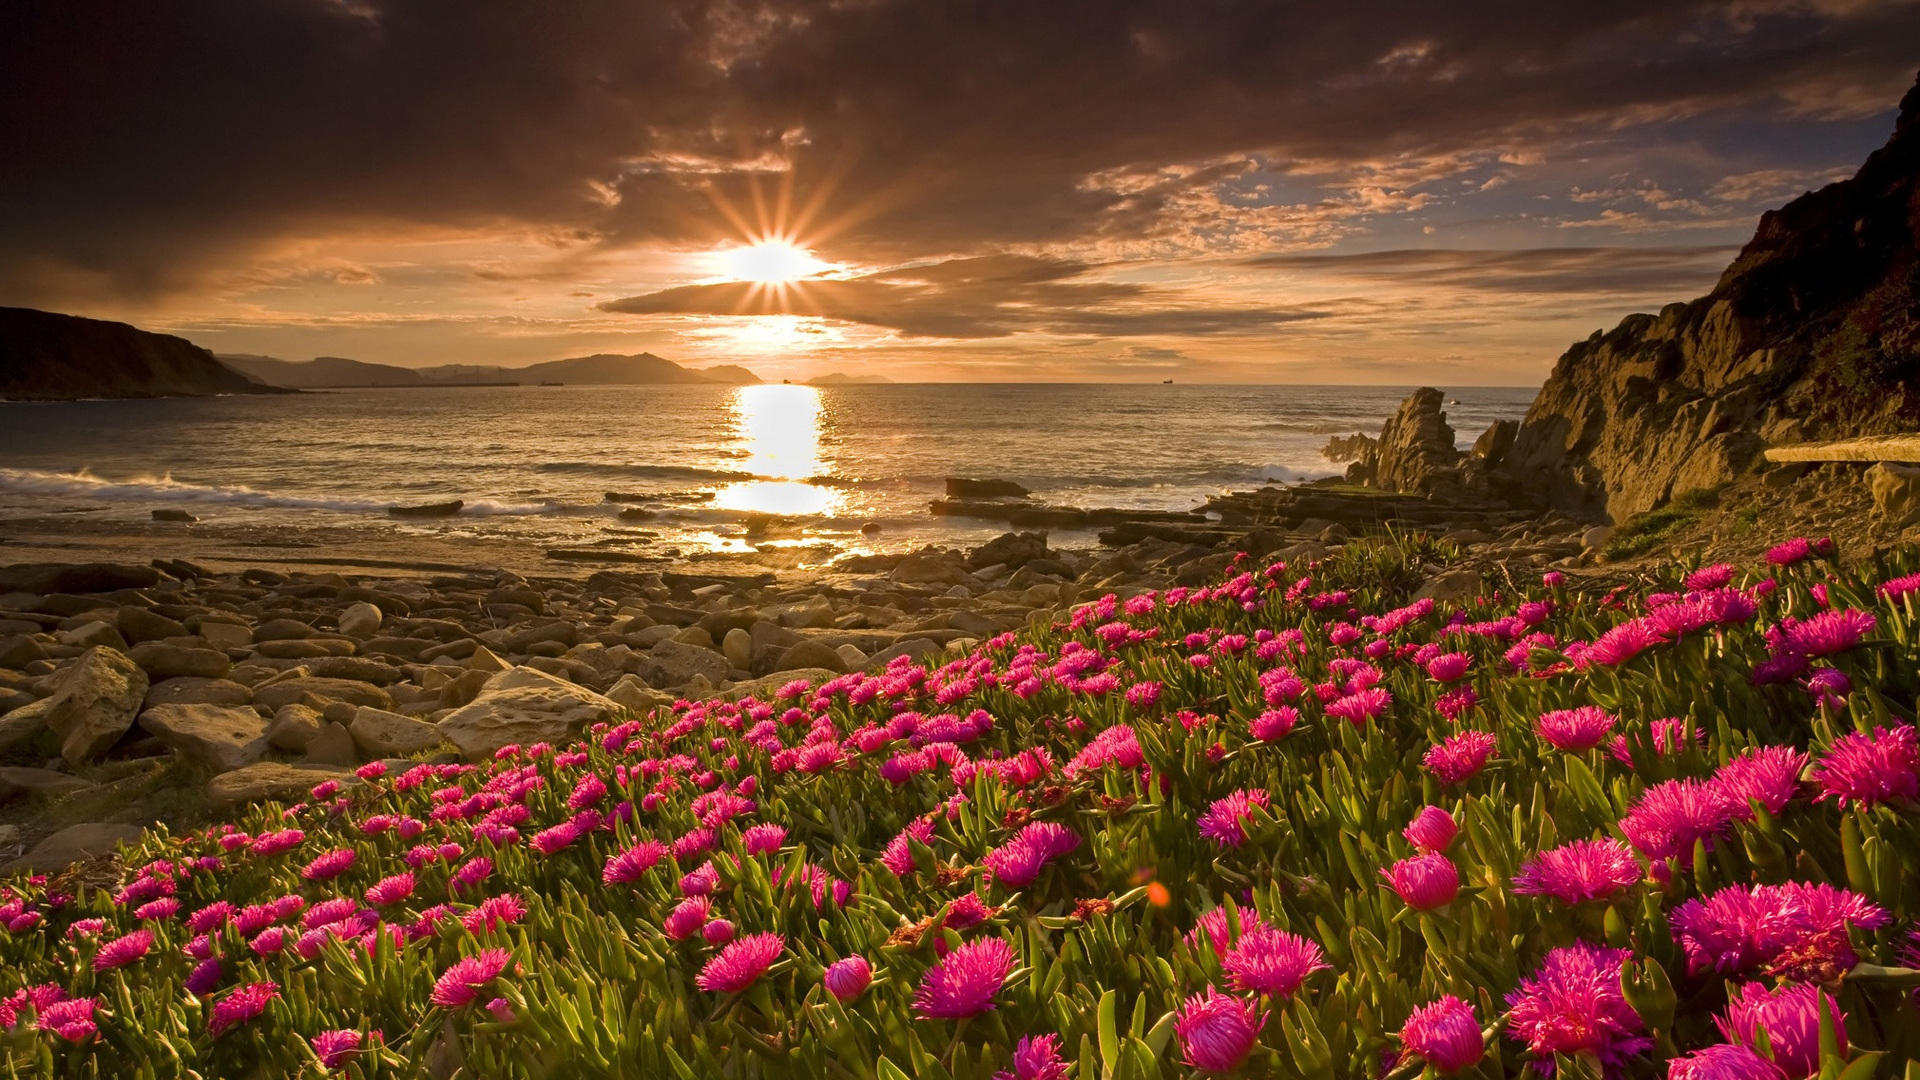 1920x1080 Flowers amp; Sunrise desktop PC and Mac wallpaper